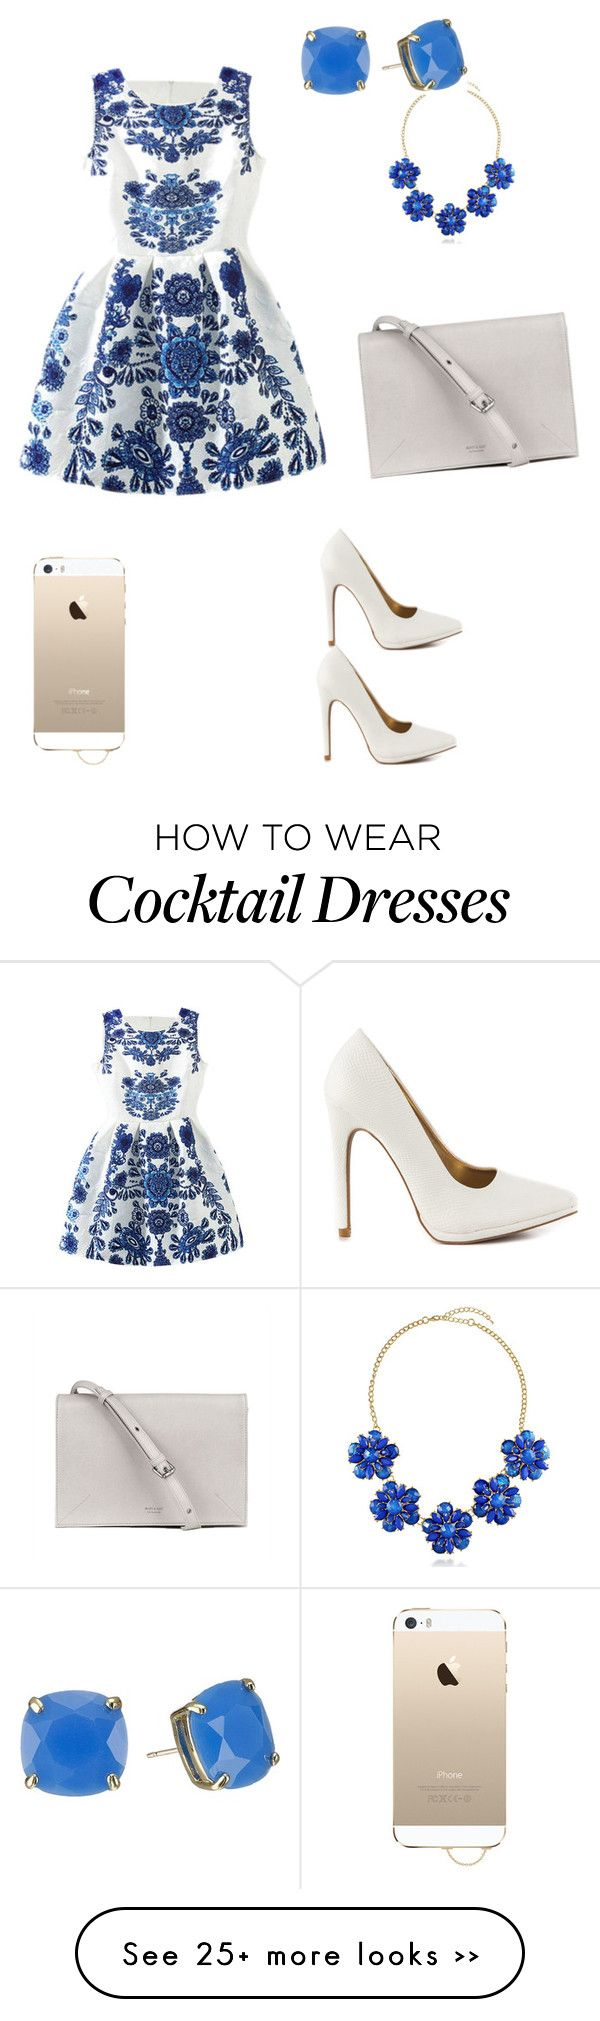 """""""tenue de cocktails"""" by hirza on Polyvore"""